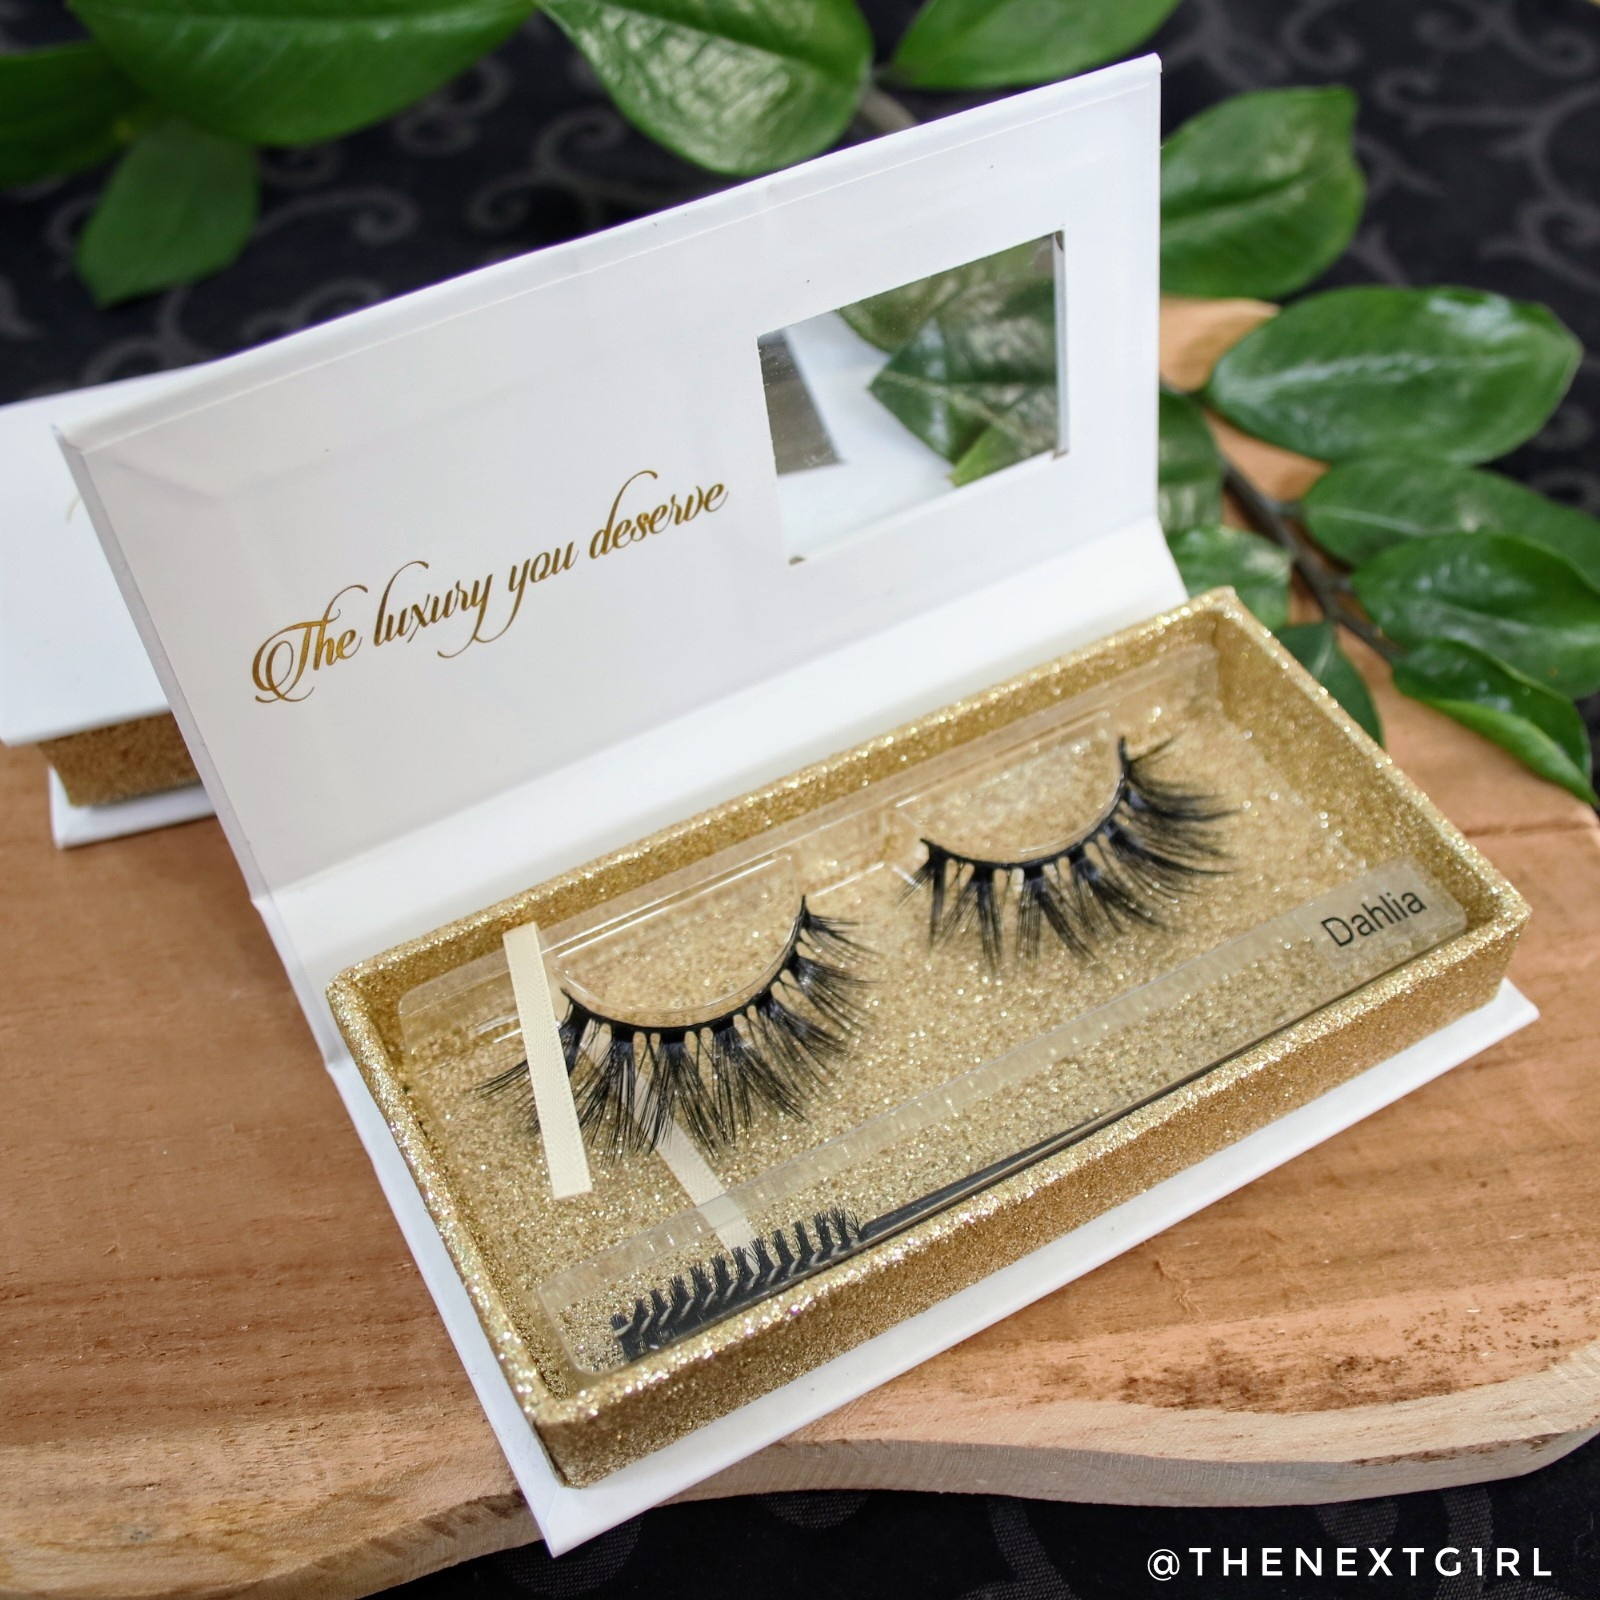 Review: Nepwimpers van Lashes by Linnie